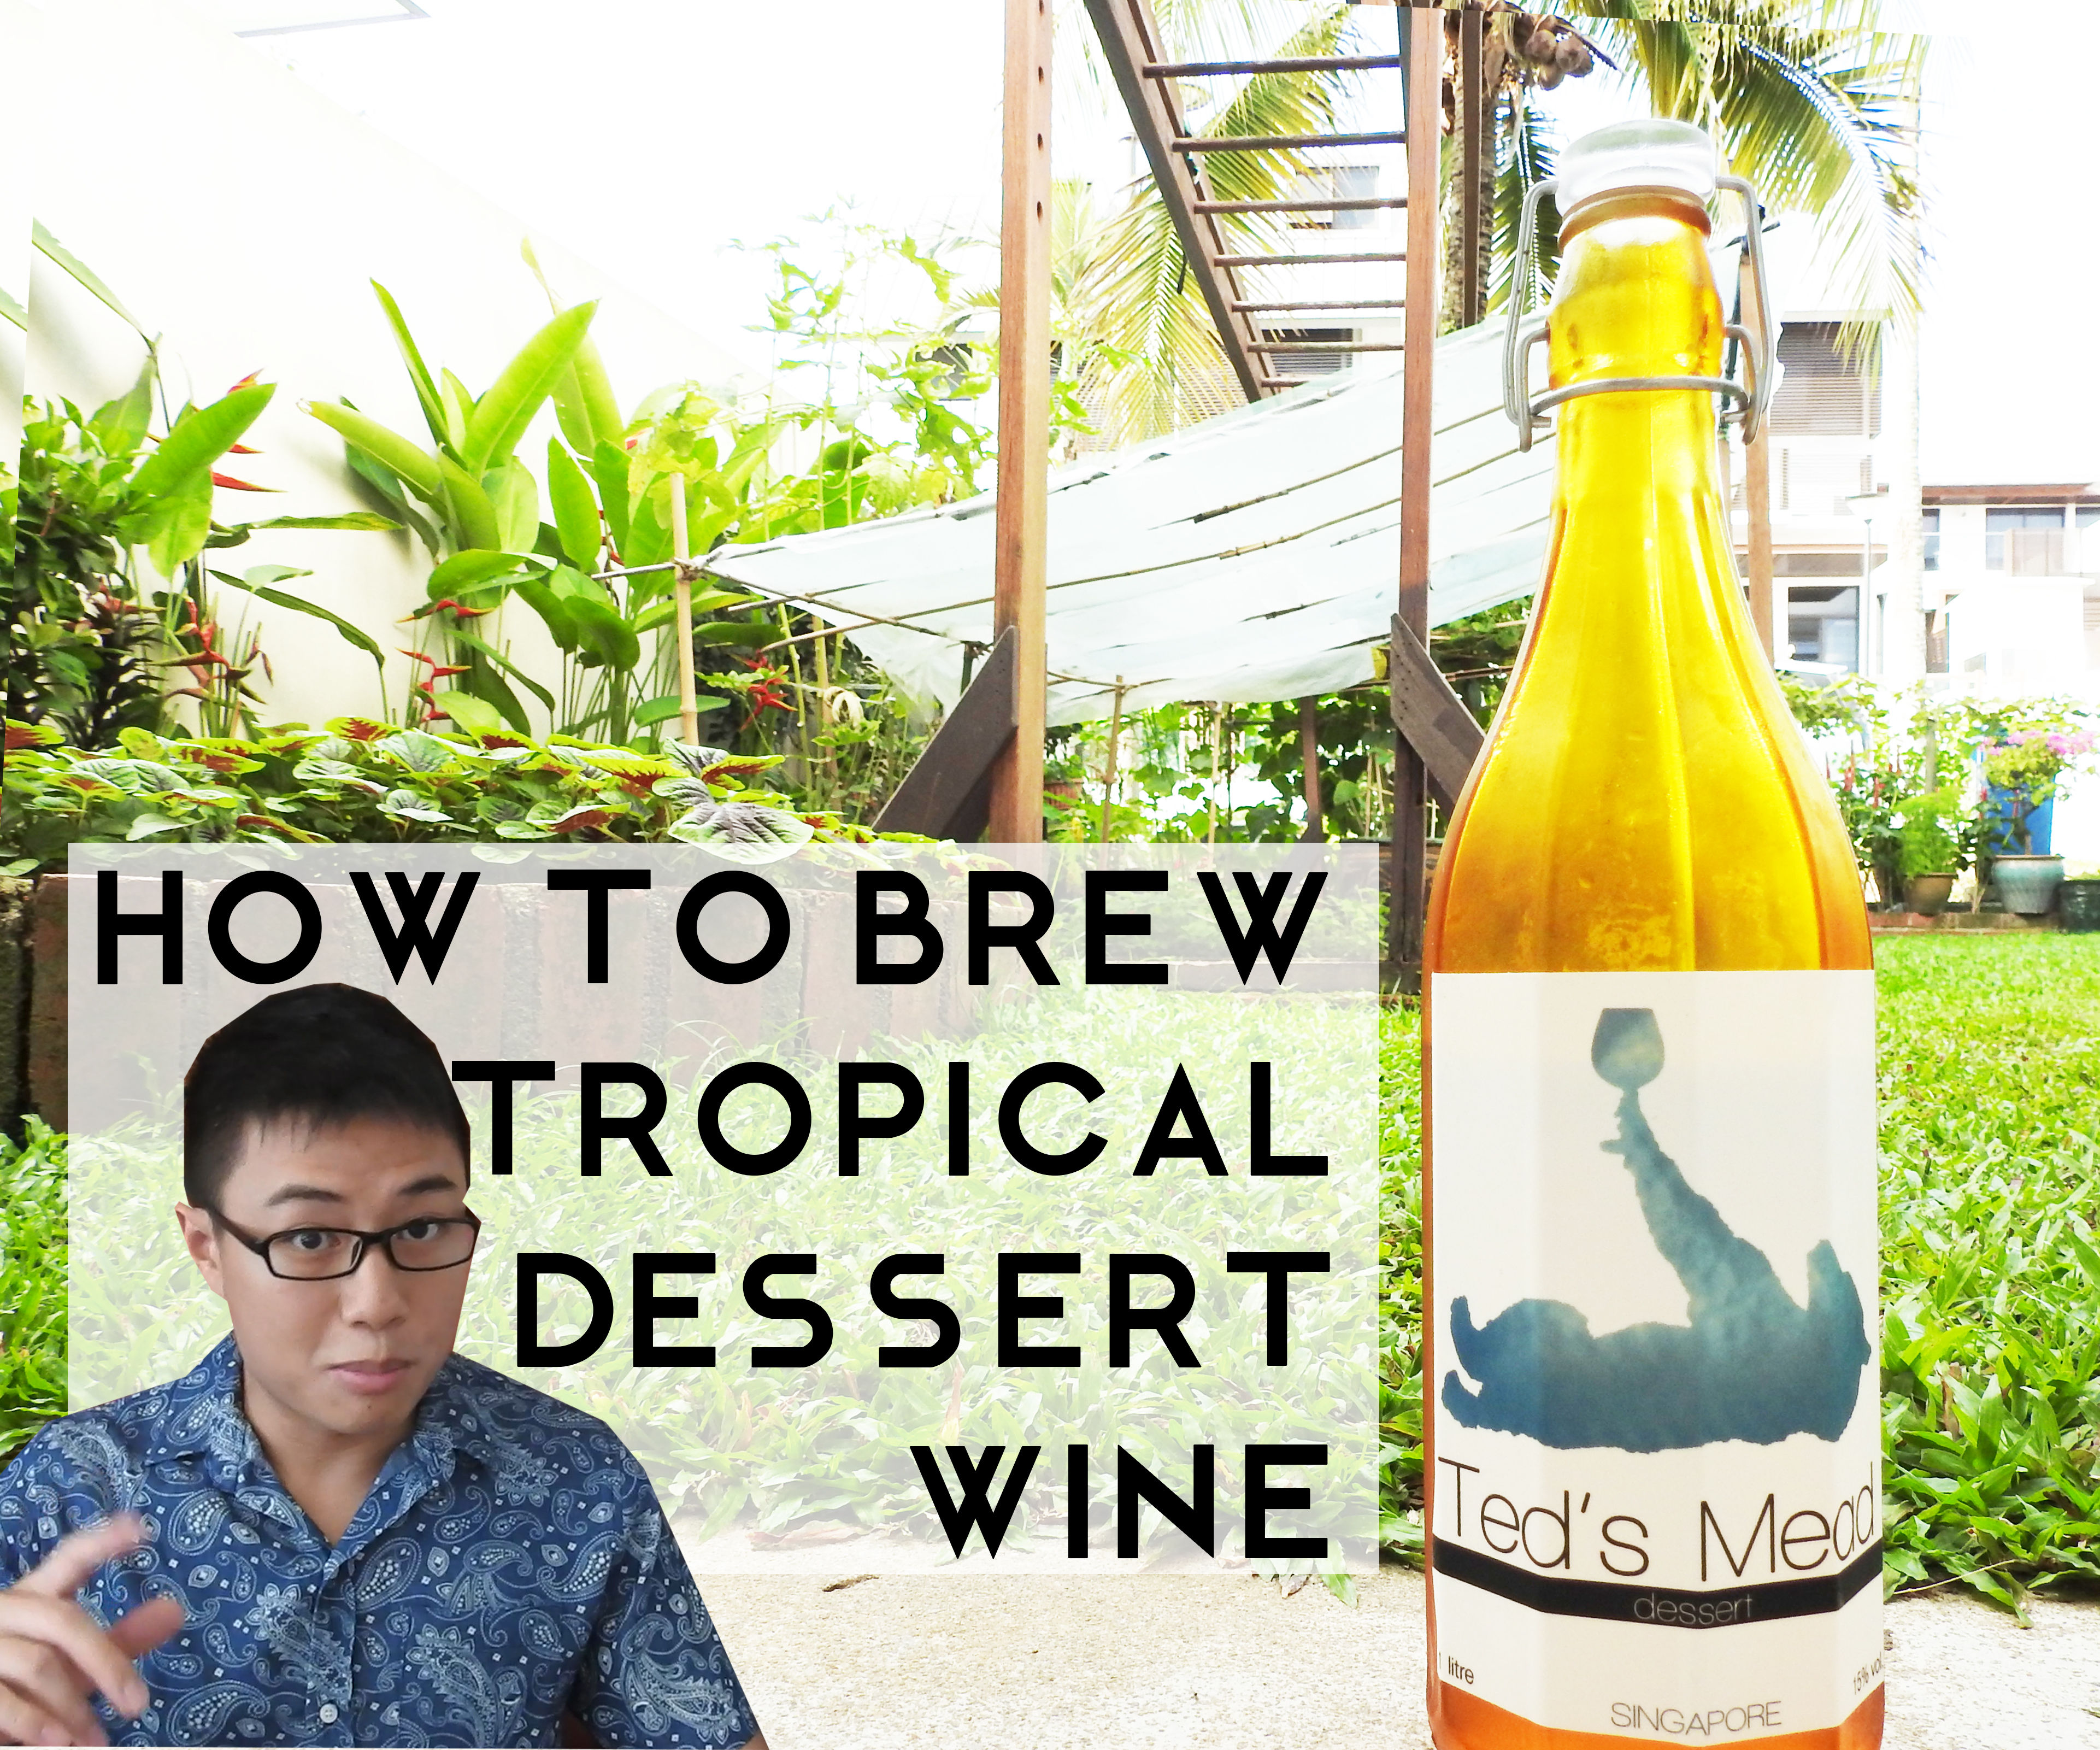 How to Make Tropical Dessert Wine (in Climates Like Singapore!)